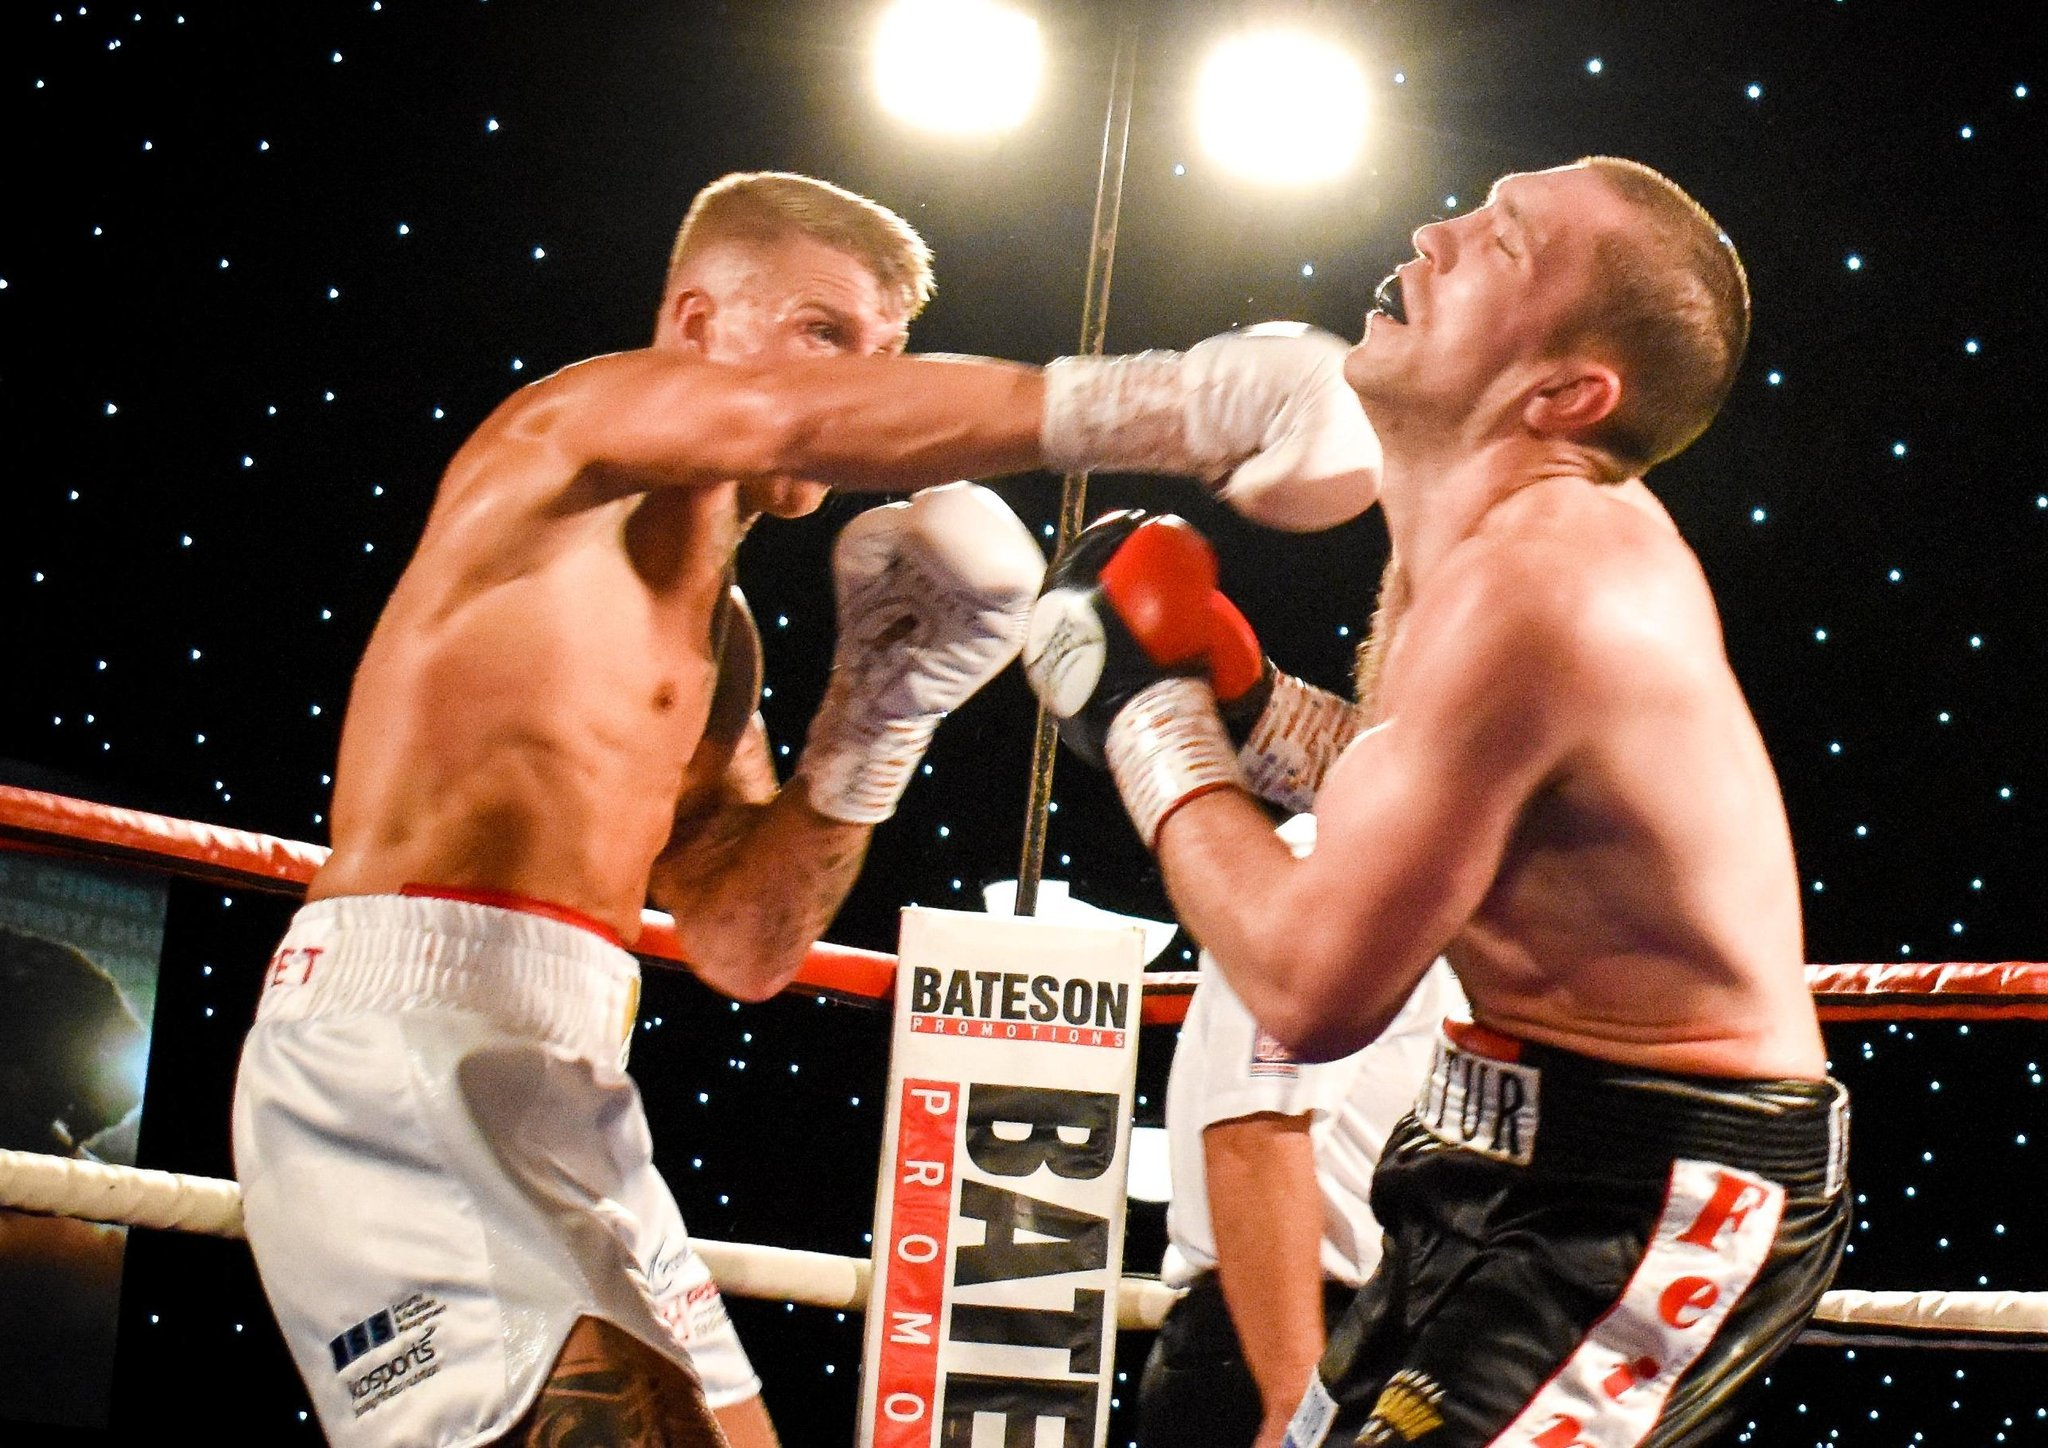 Boxing - Mick Learmonth's latest win makes it a 'perfect ...